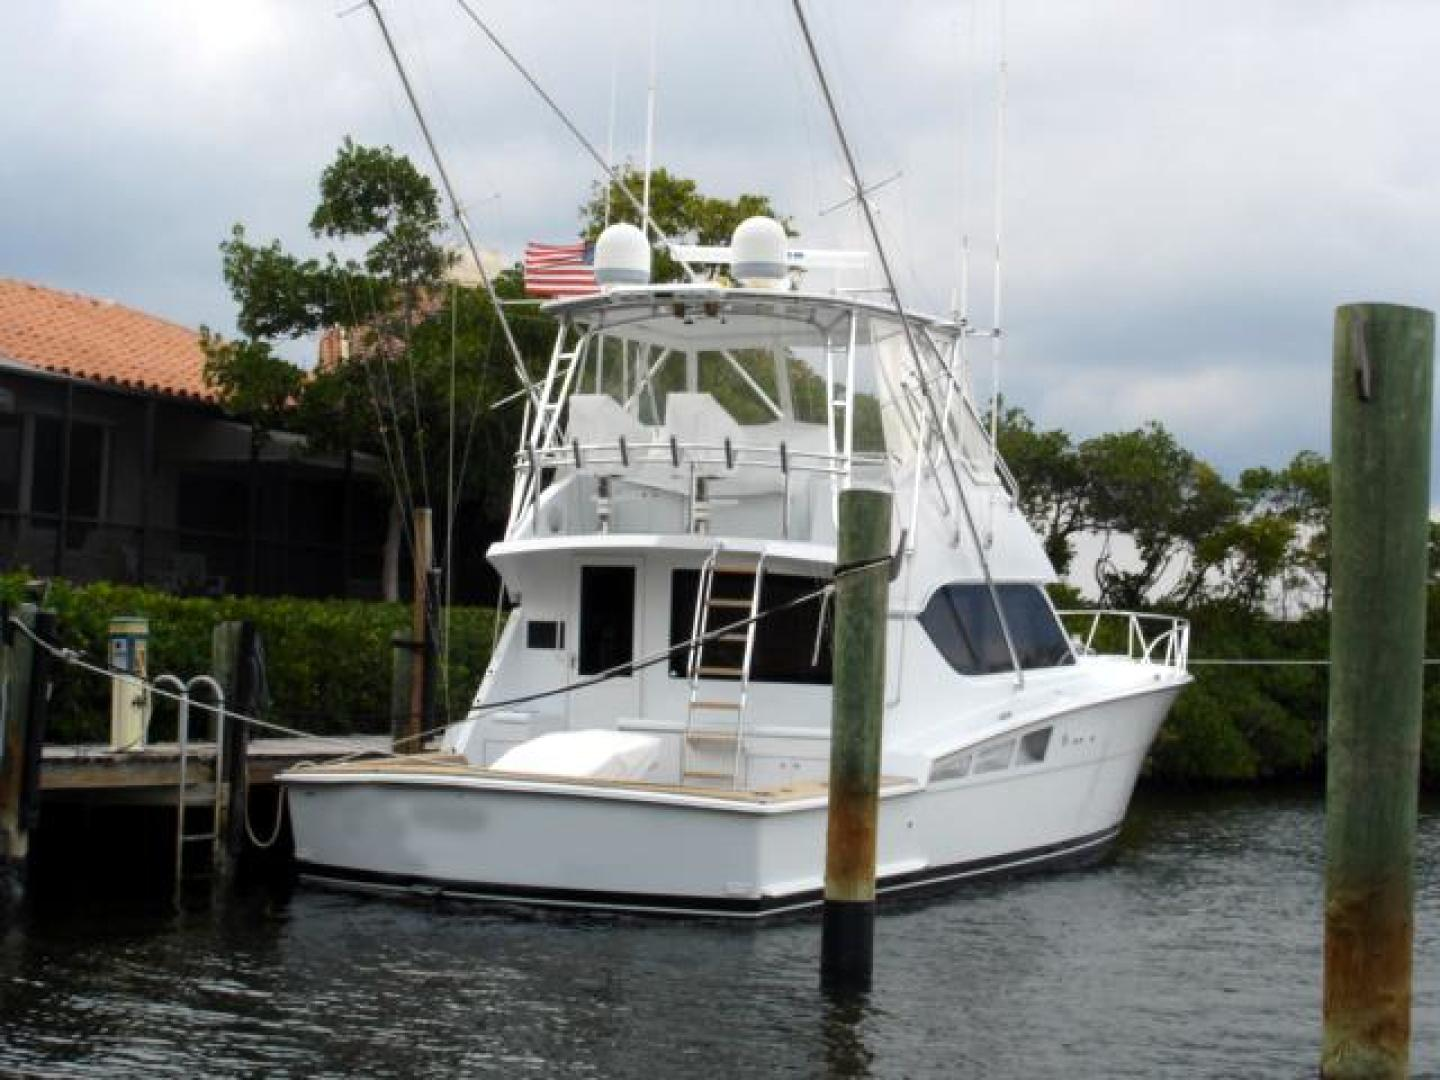 Hatteras-50 Convertible SF 2001-Kmteezer New Orleans-Louisiana-United States-Stern-371142 | Thumbnail